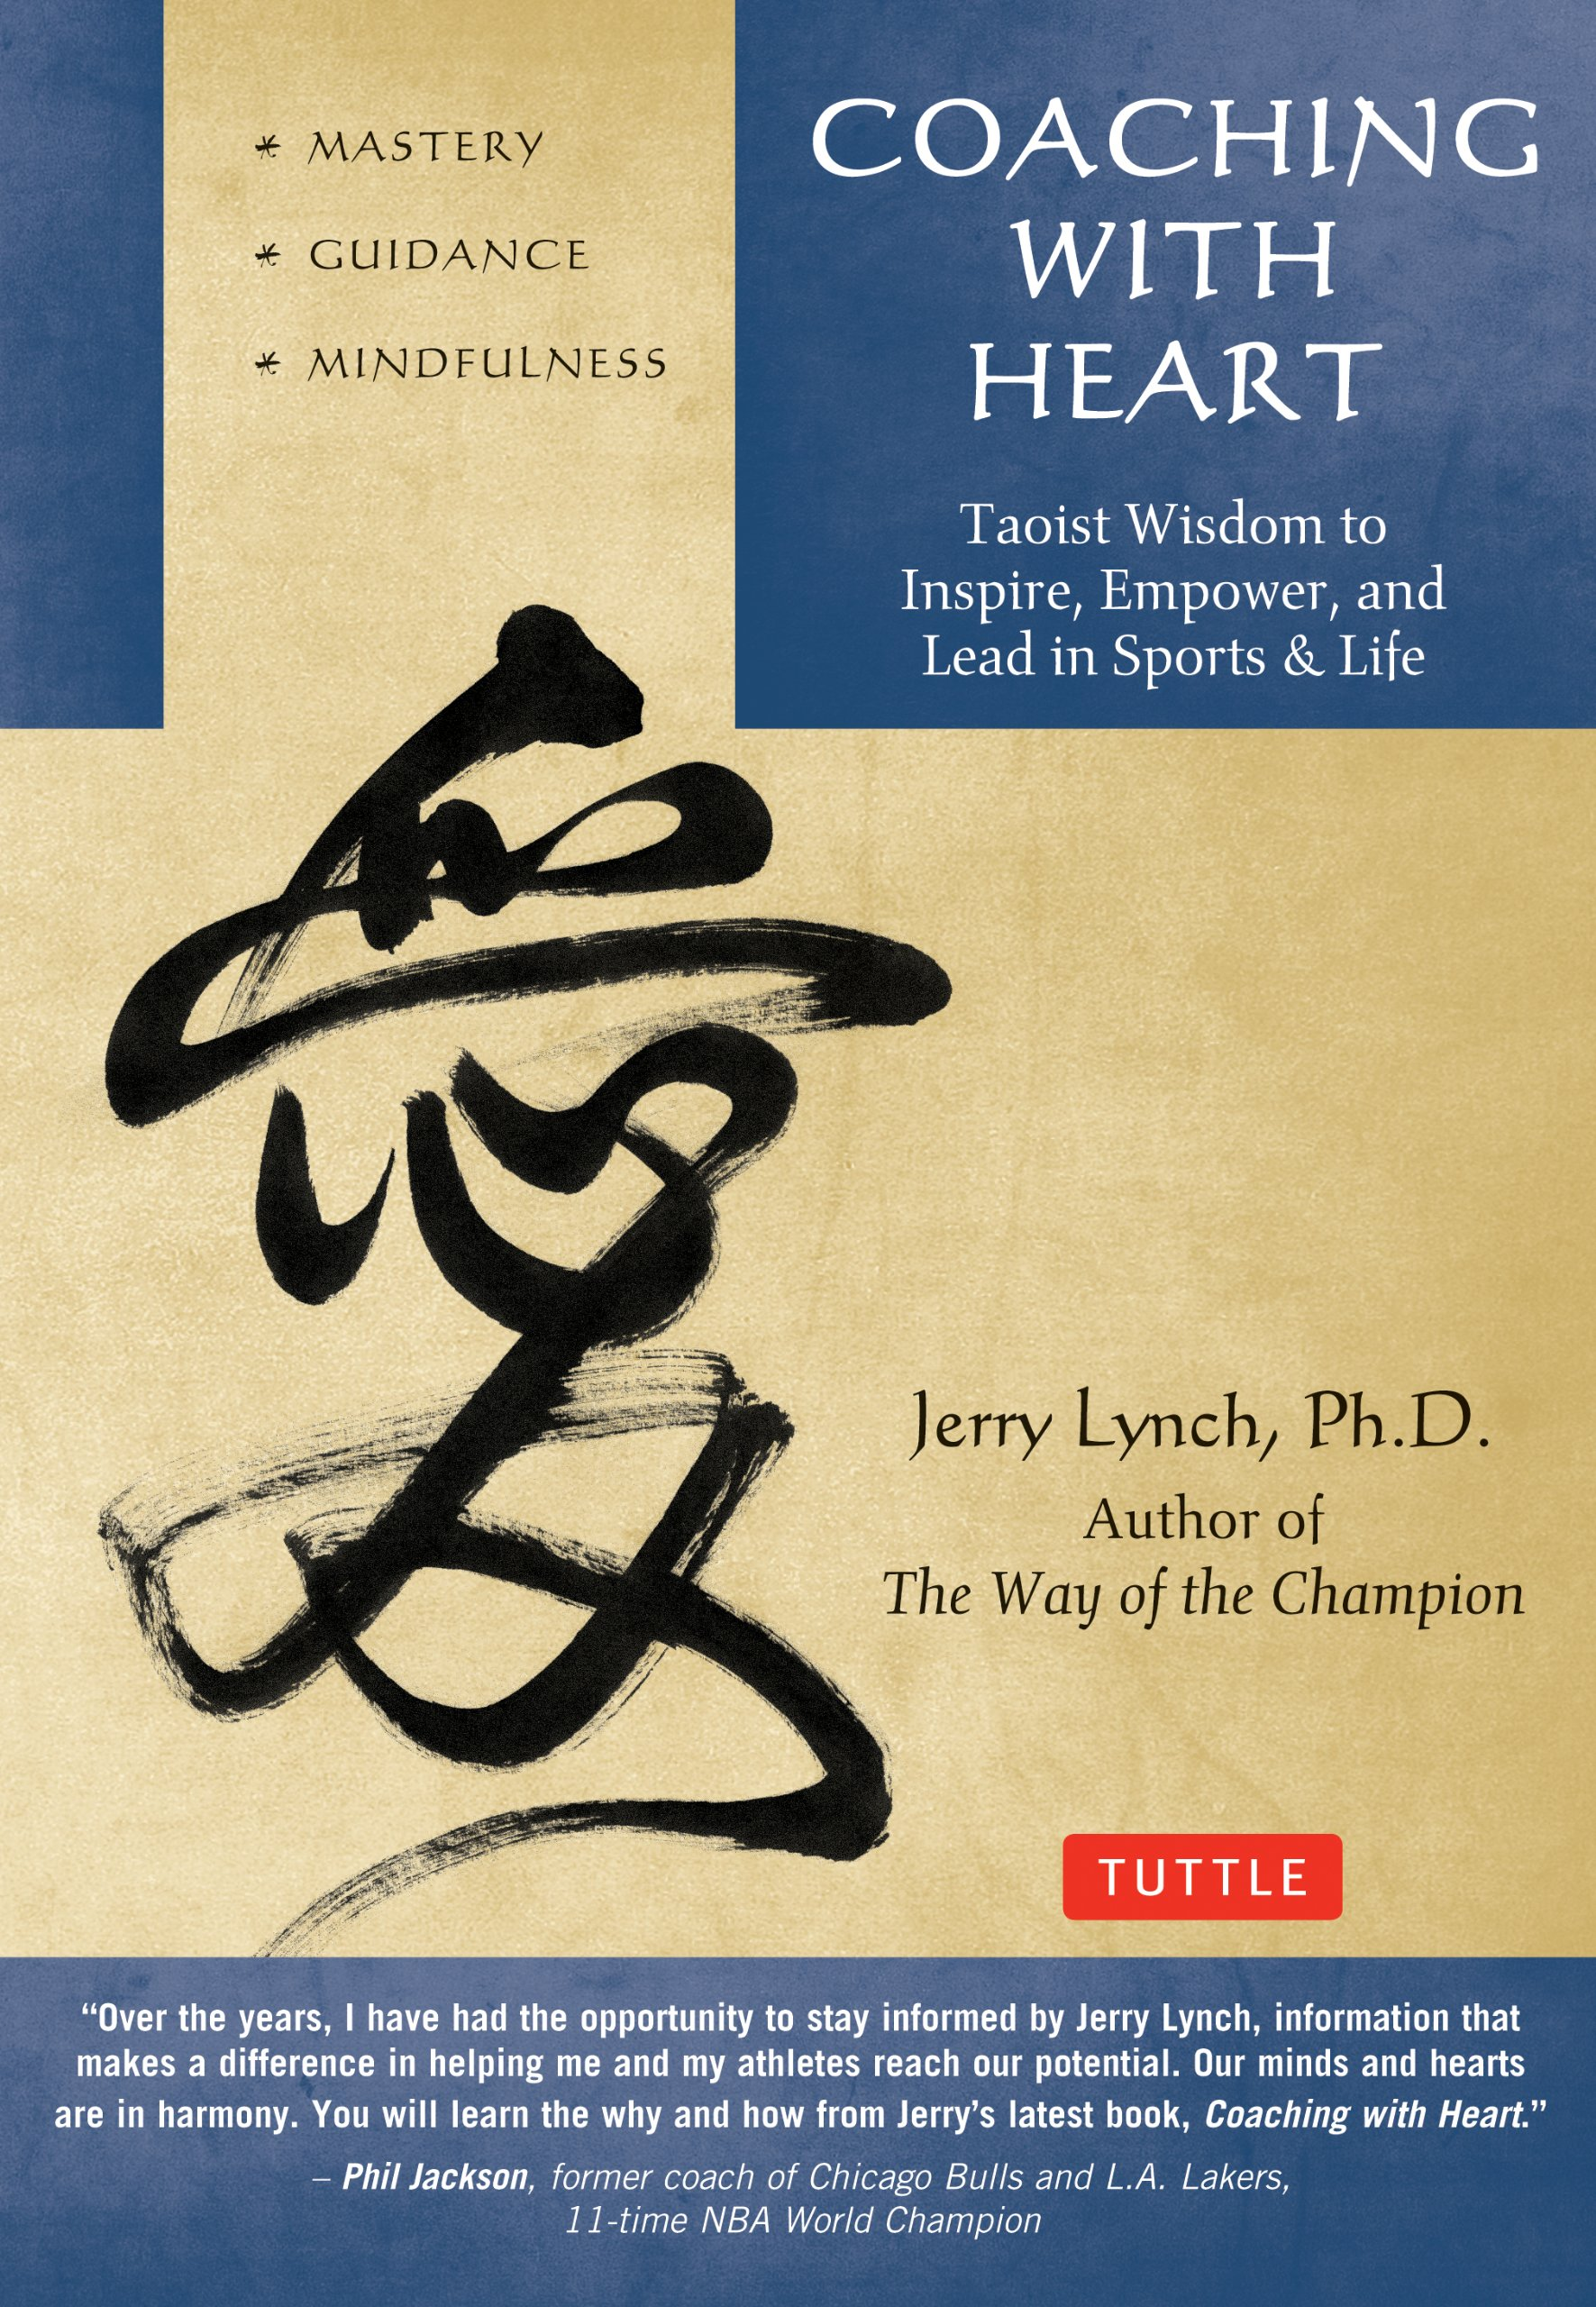 coaching with heart taoist wisdom to inspire empower and lead in sports life jerry lynch chungliang al huang 0884568676637 amazoncom books